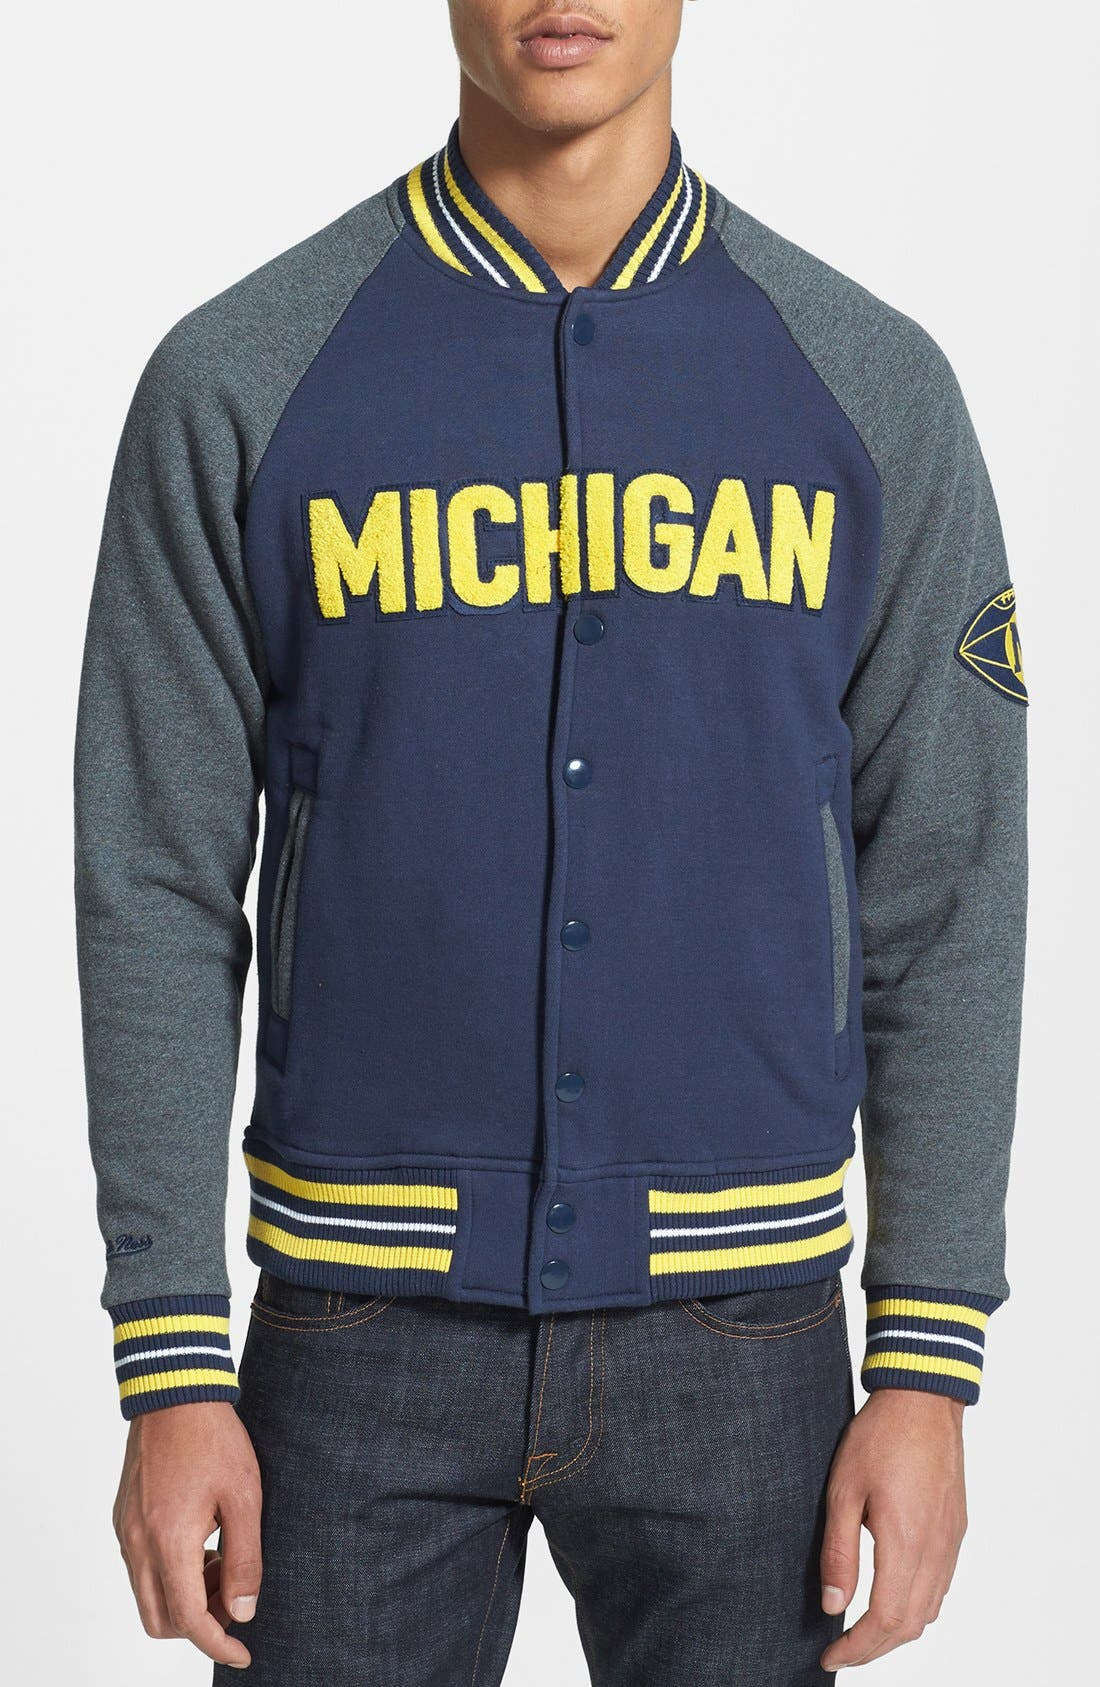 Main Image - Mitchell & Ness 'Backward Pass - Michigan' Fleece Jacket